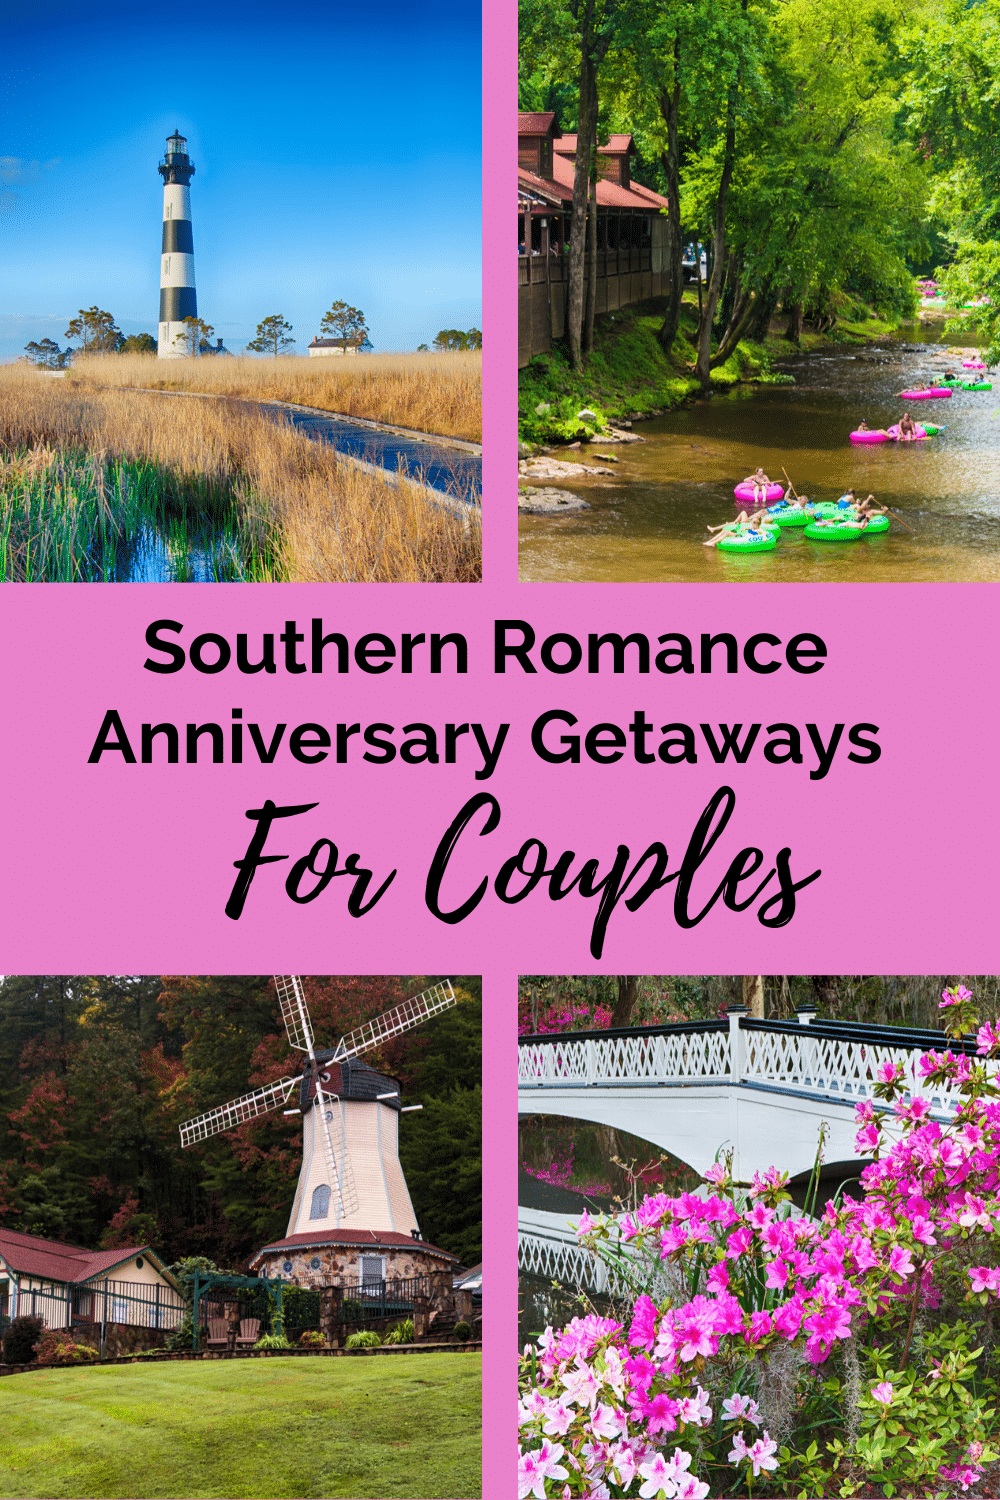 Home to vast antebellum plantations and rich cultural history some of the destinations for the best anniversary vacations for couples can be found in the South. #anniversarygetaways #southernromance #anniversarygetaways #couplesvacation